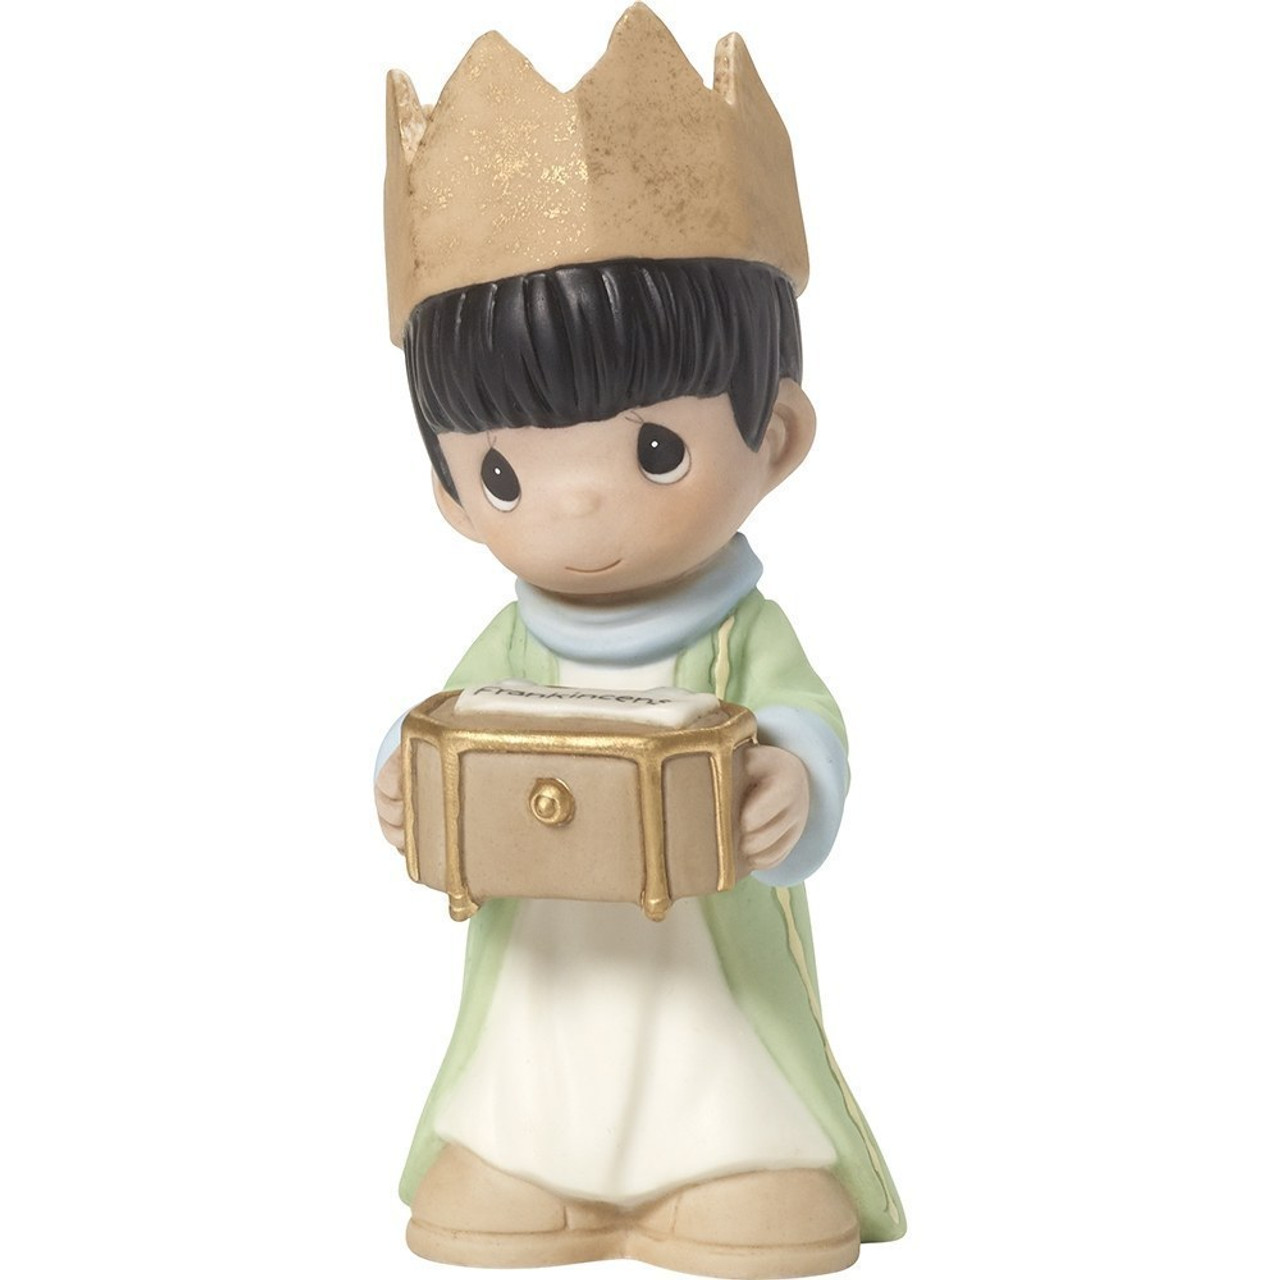 Christmas Gifts We Three Kings Of Orient Are Direct Exclusive Bisque Porcelain Figurine The First Christmas Pageant Nativity Series 189008